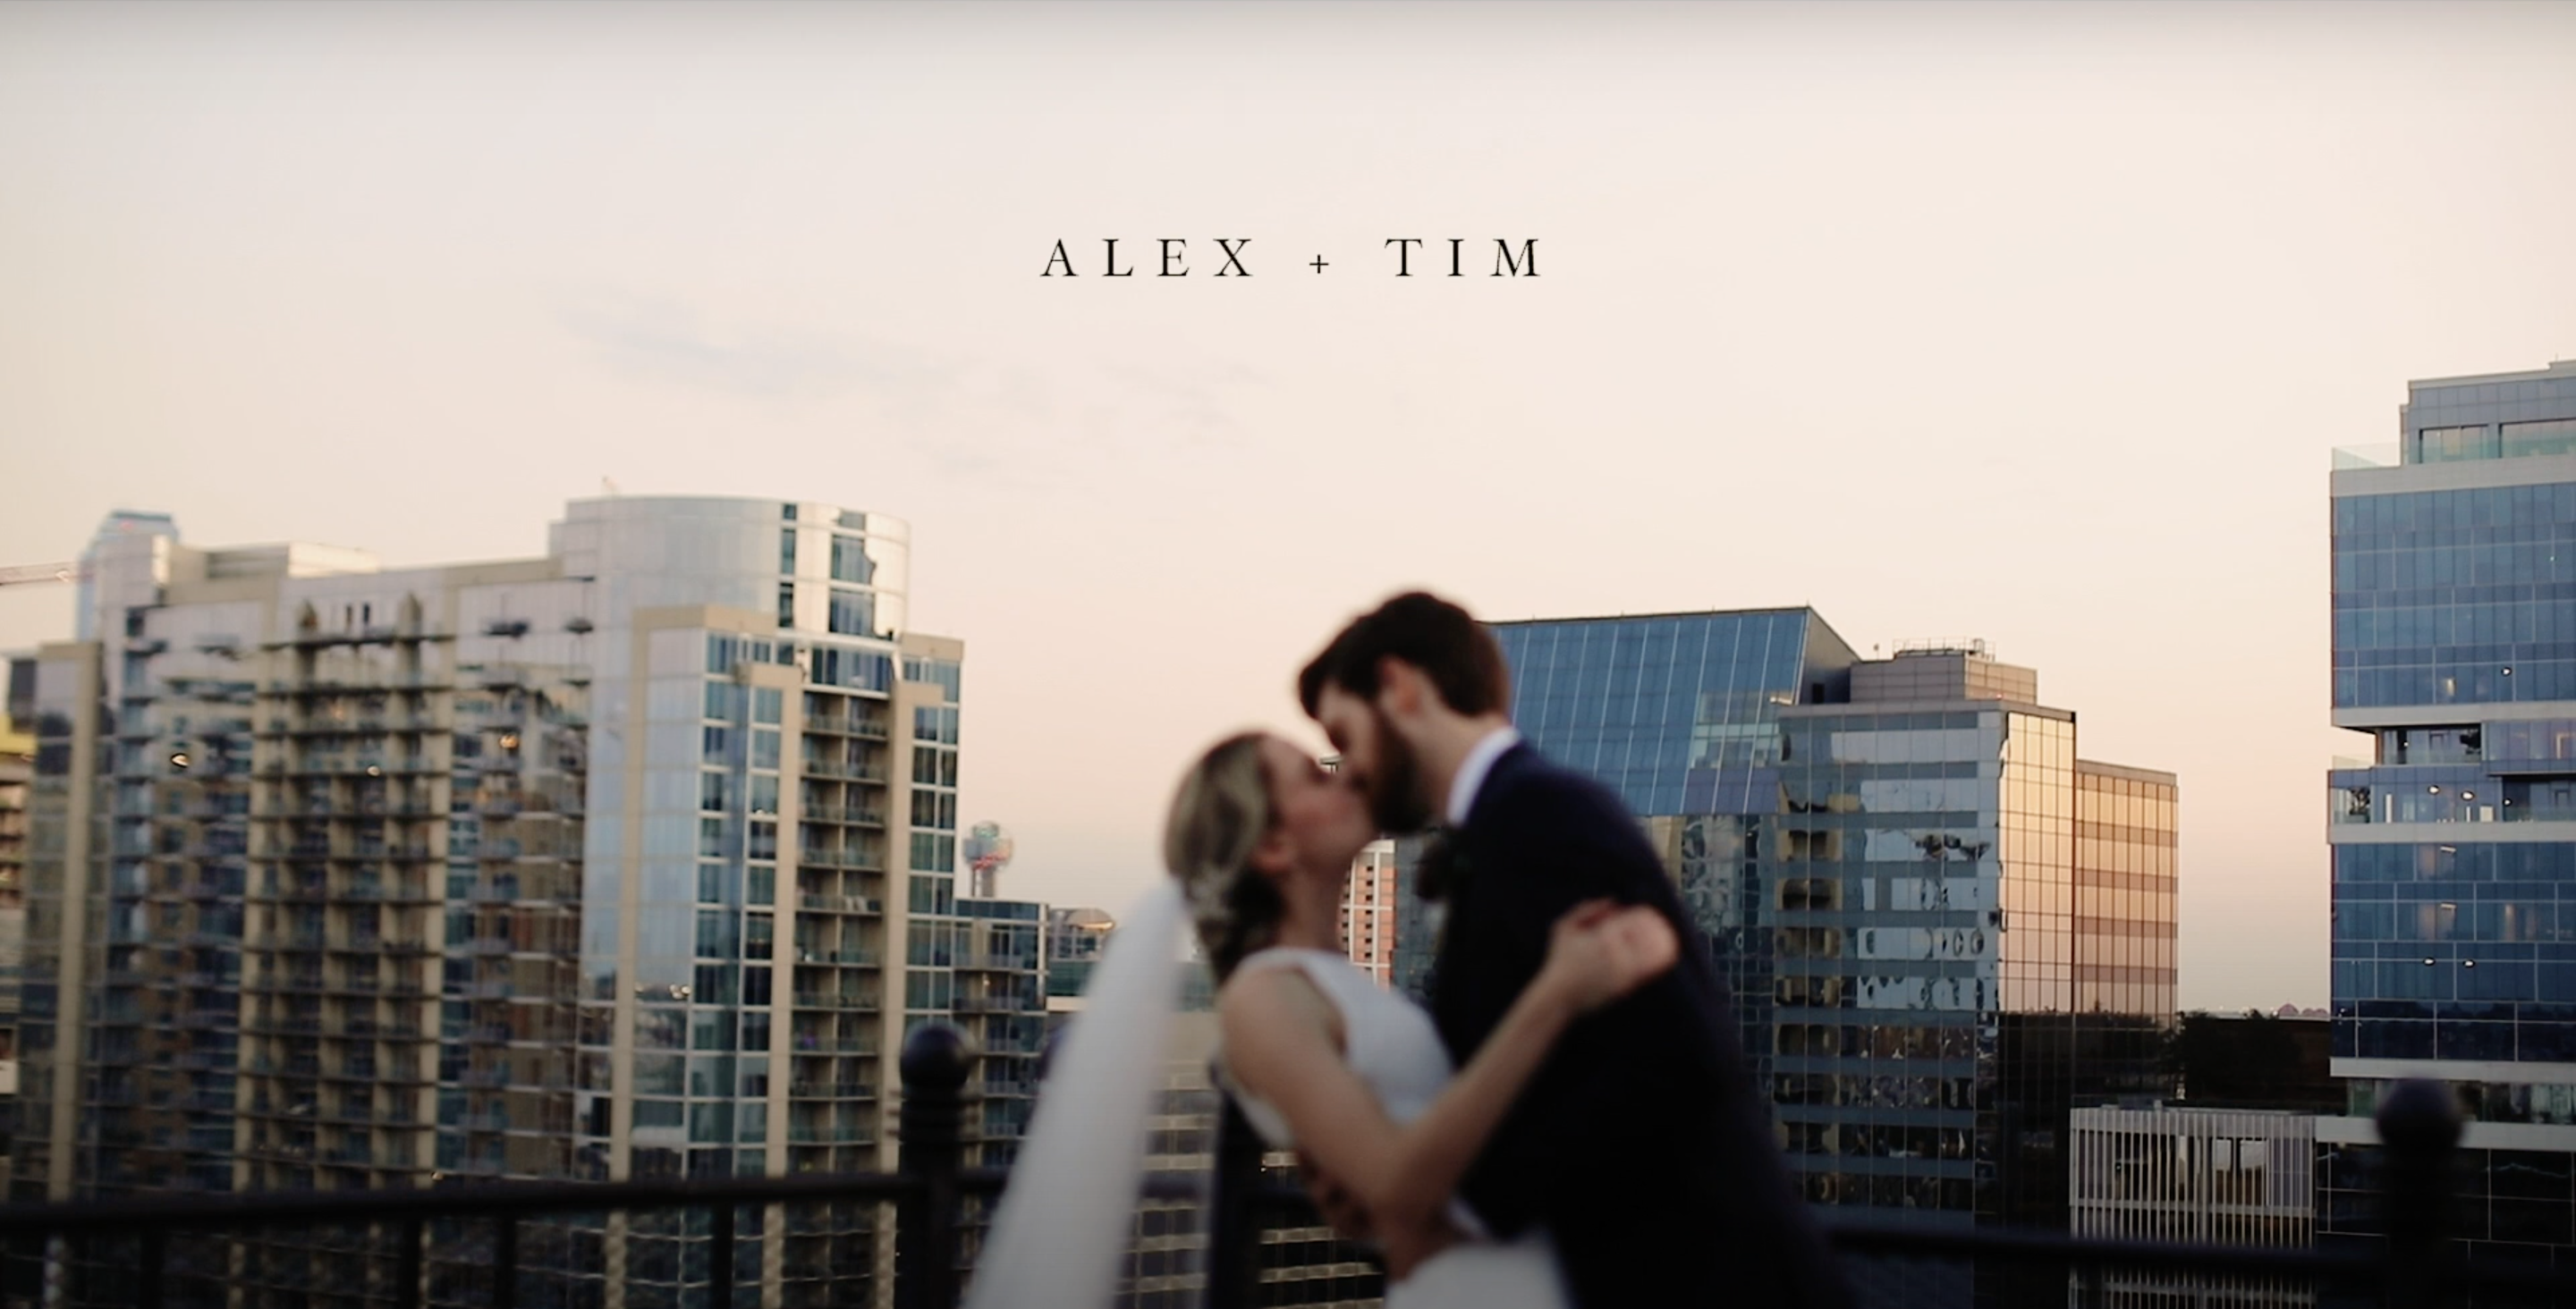 Alex + Tim | Dallas, Texas | The Stoneleigh